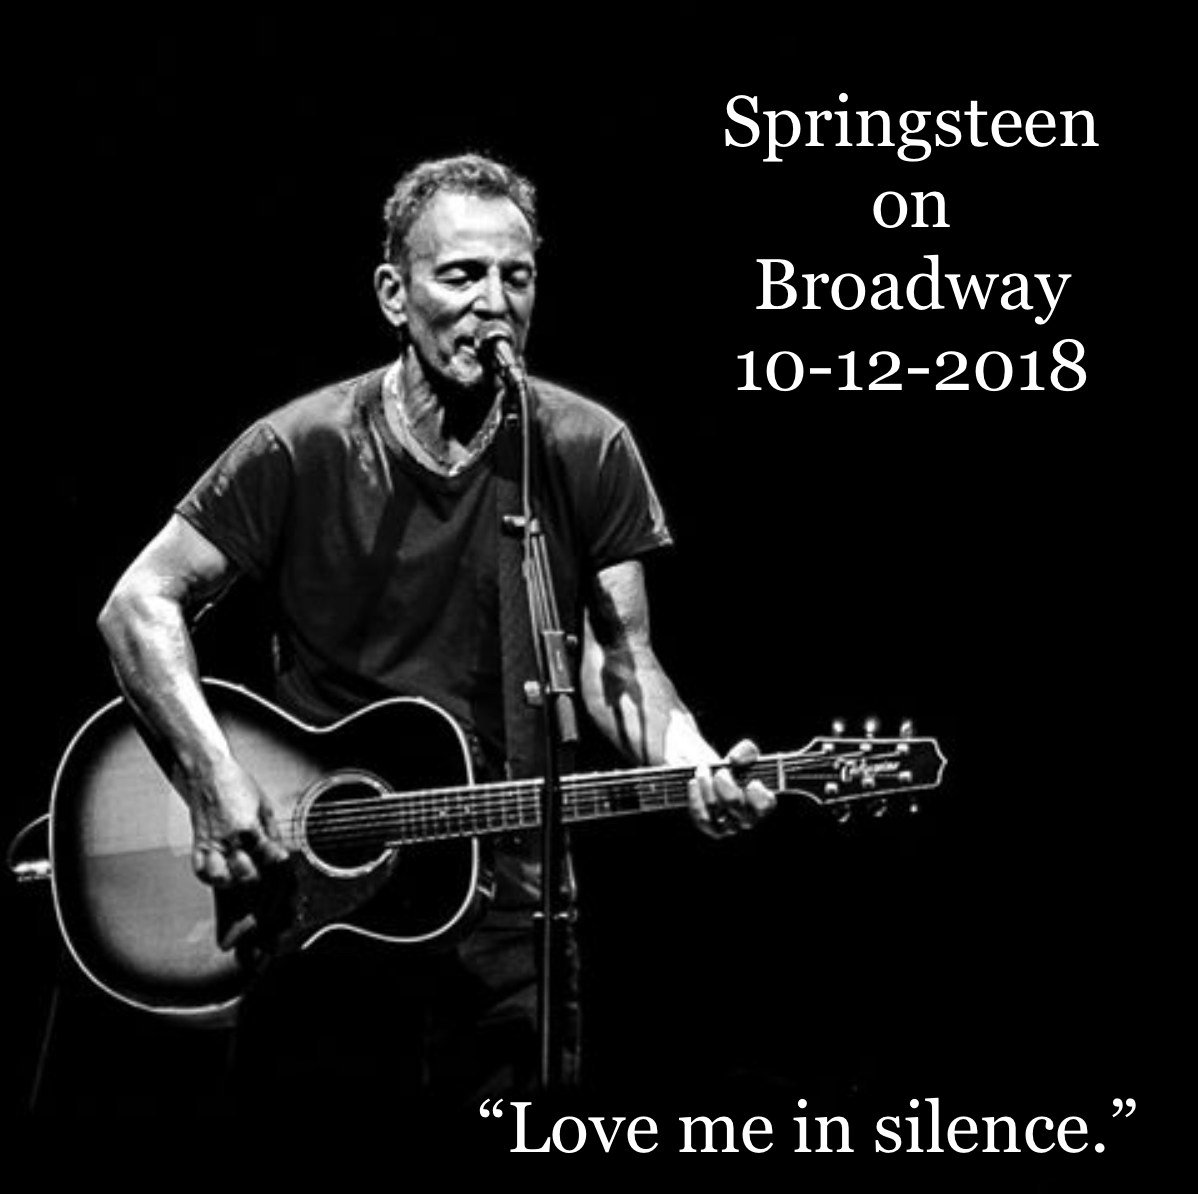 BruceSpringsteen2018-10-12BroadwayNYC.jpg